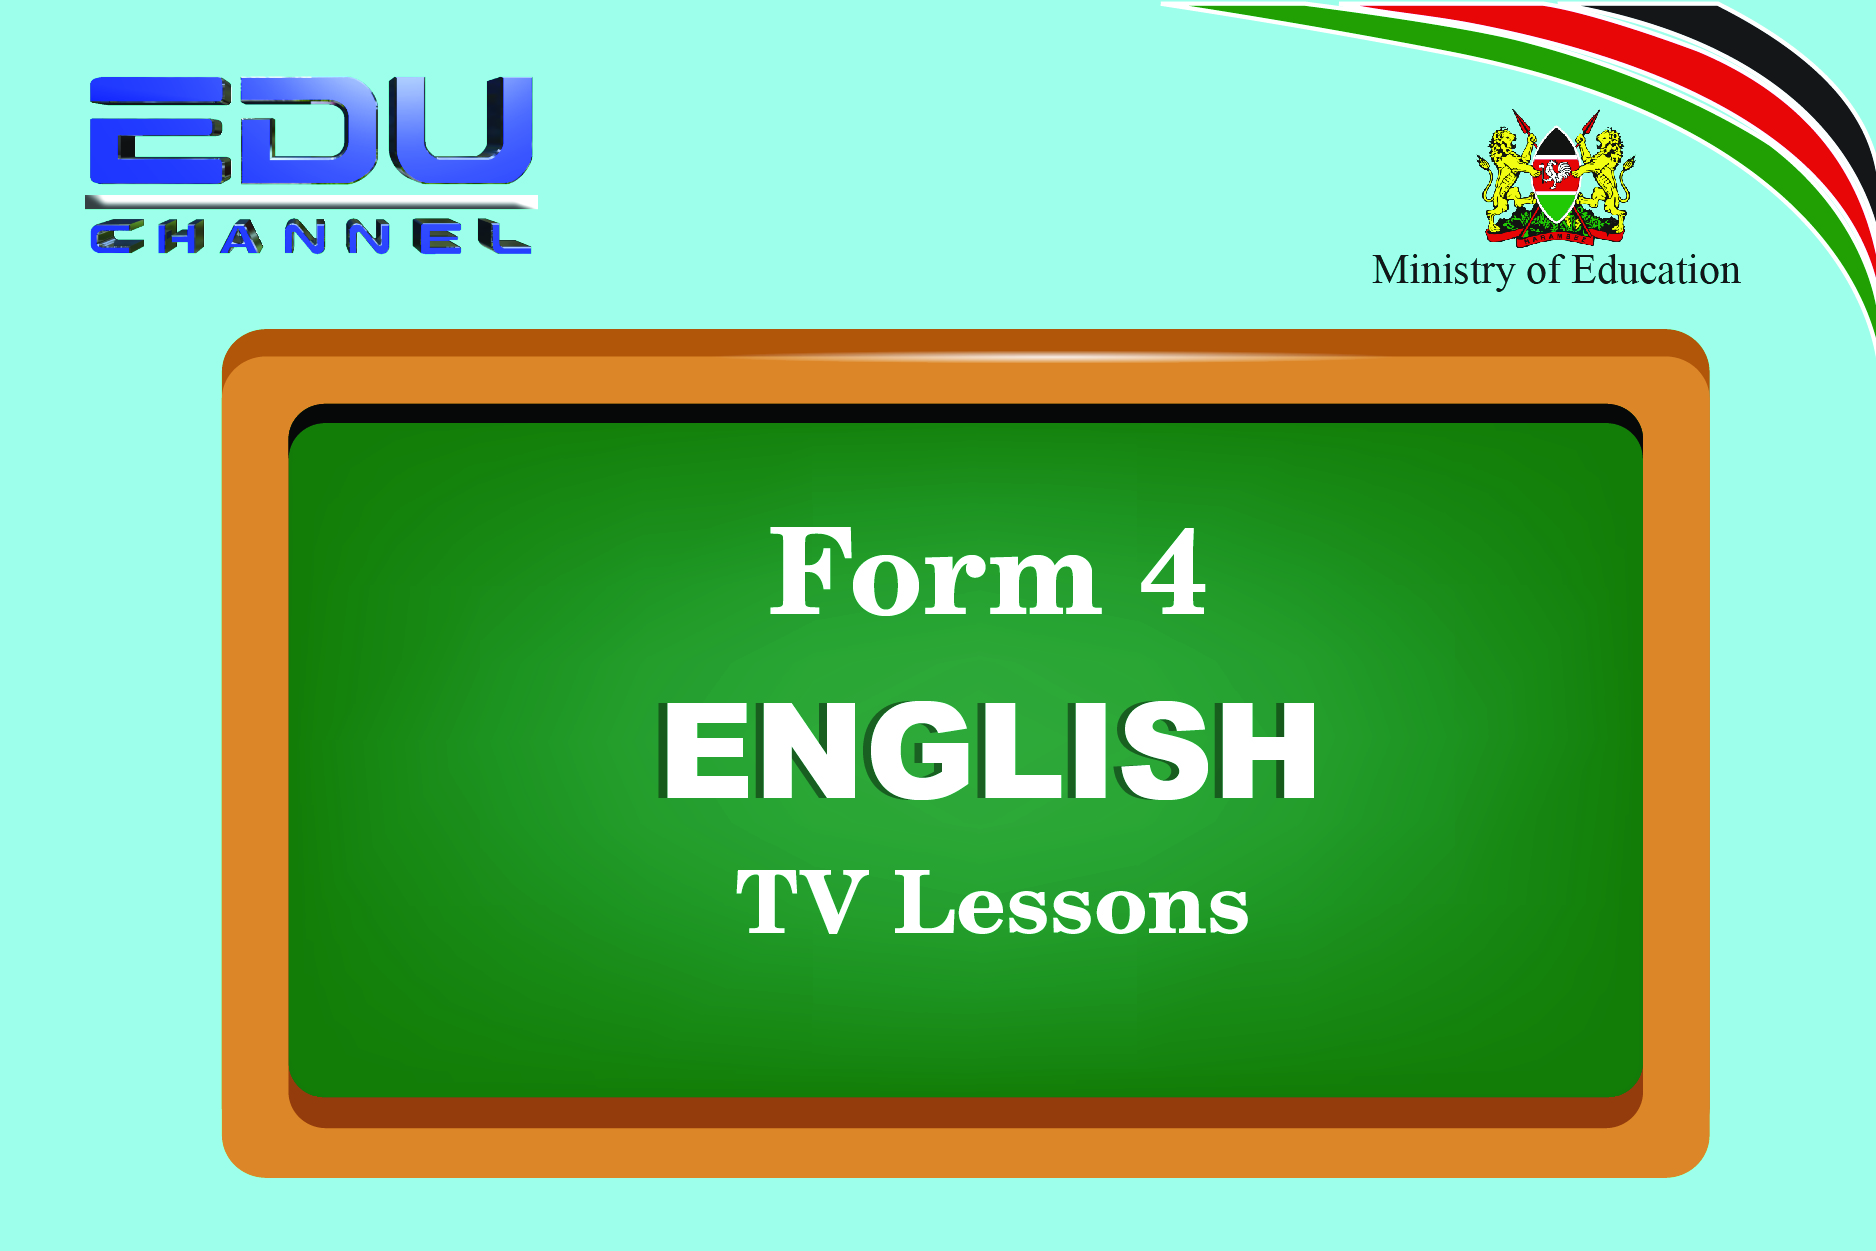 Form 4 English  Lesson 10: Paying Attentions - Barriers to listening